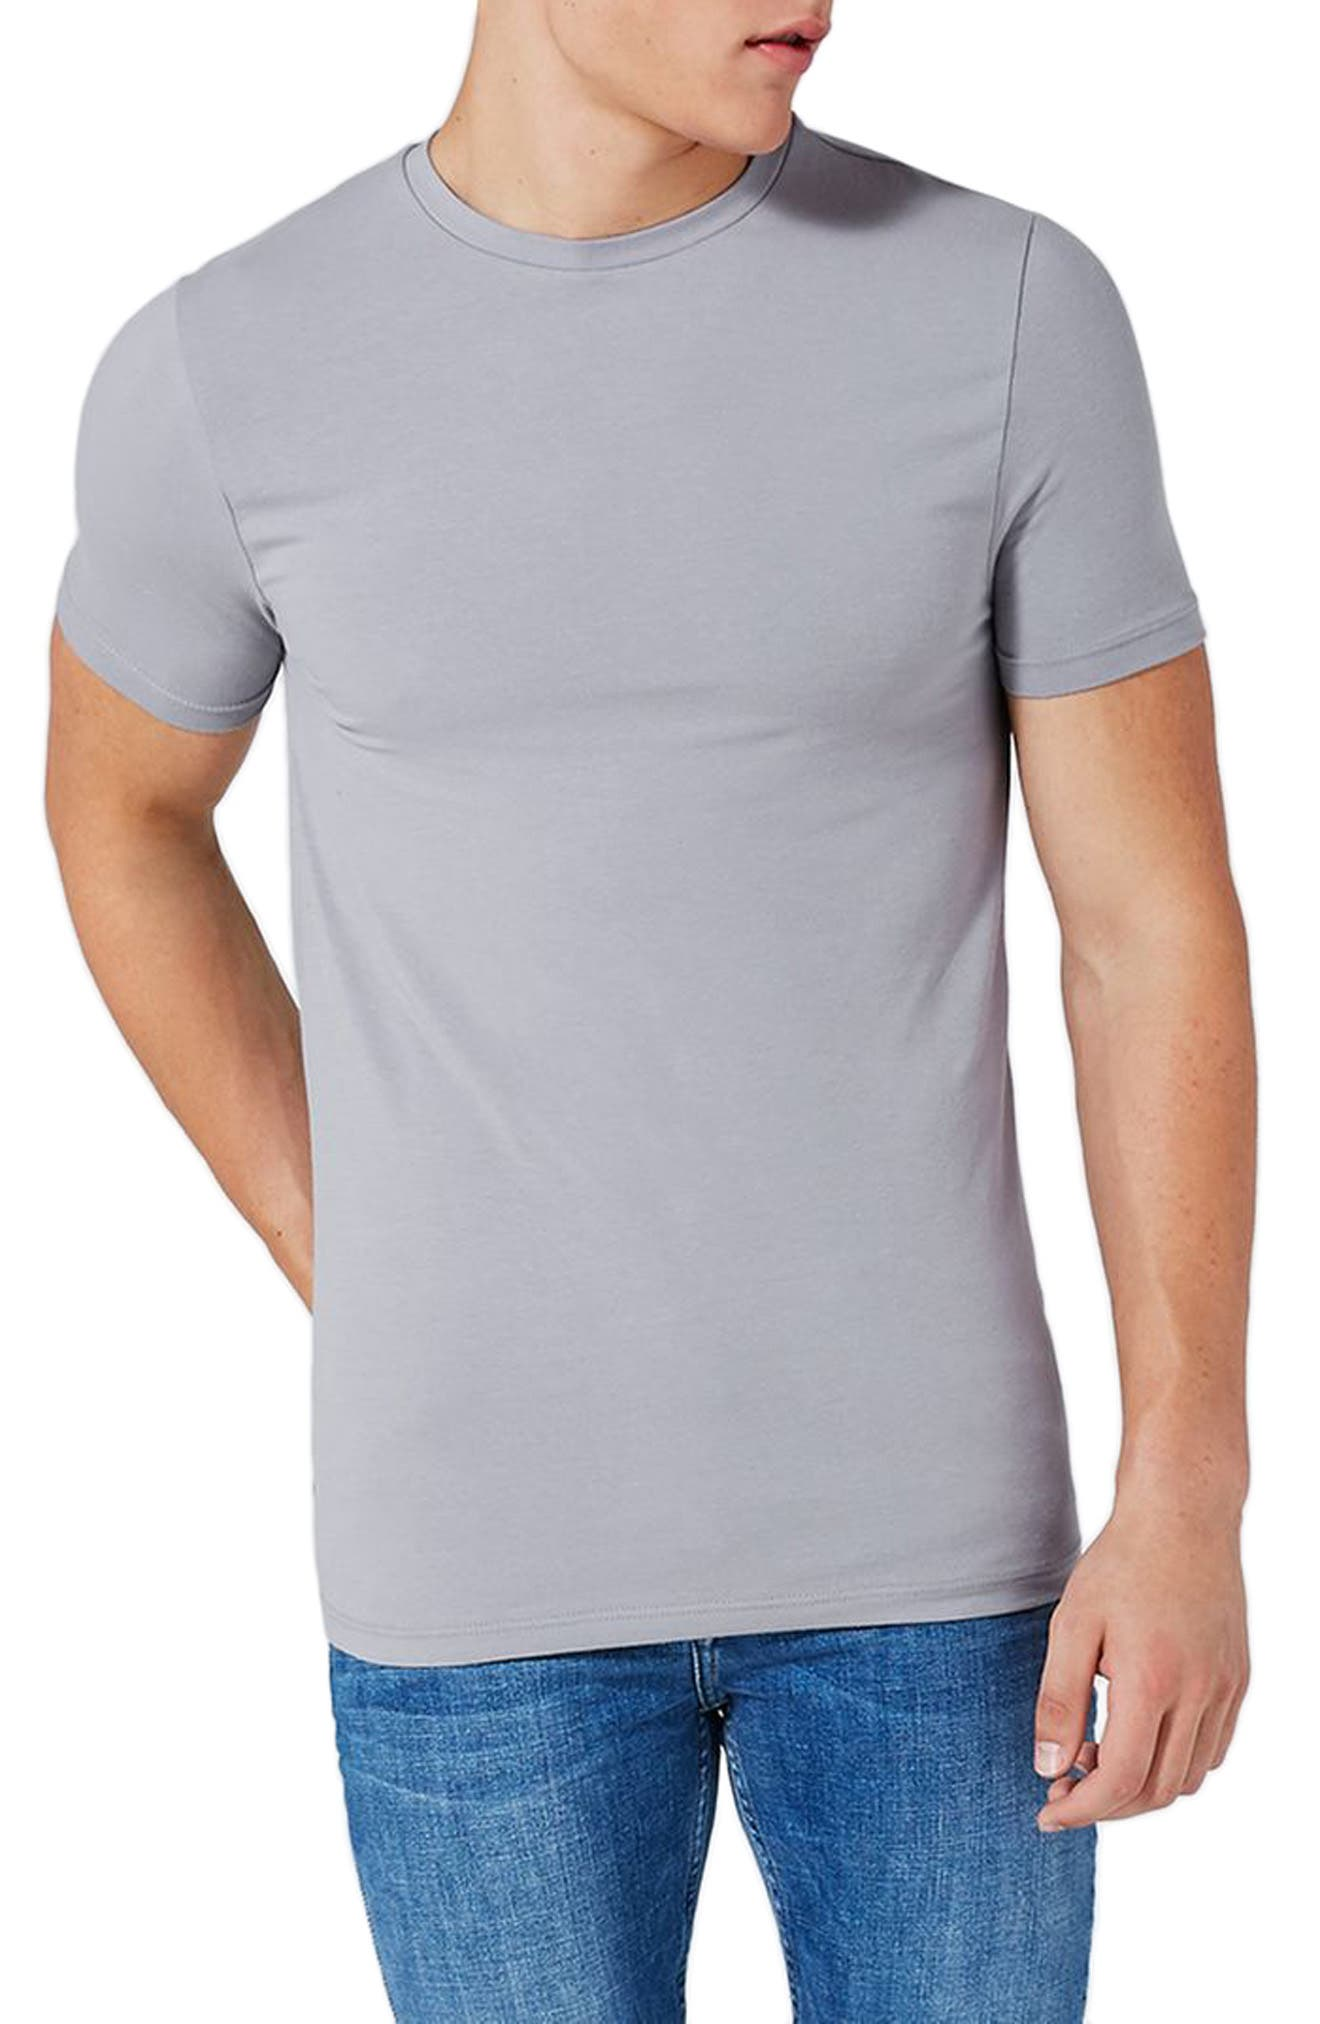 Ultra Muscle Fit T-Shirt,                             Main thumbnail 1, color,                             Grey